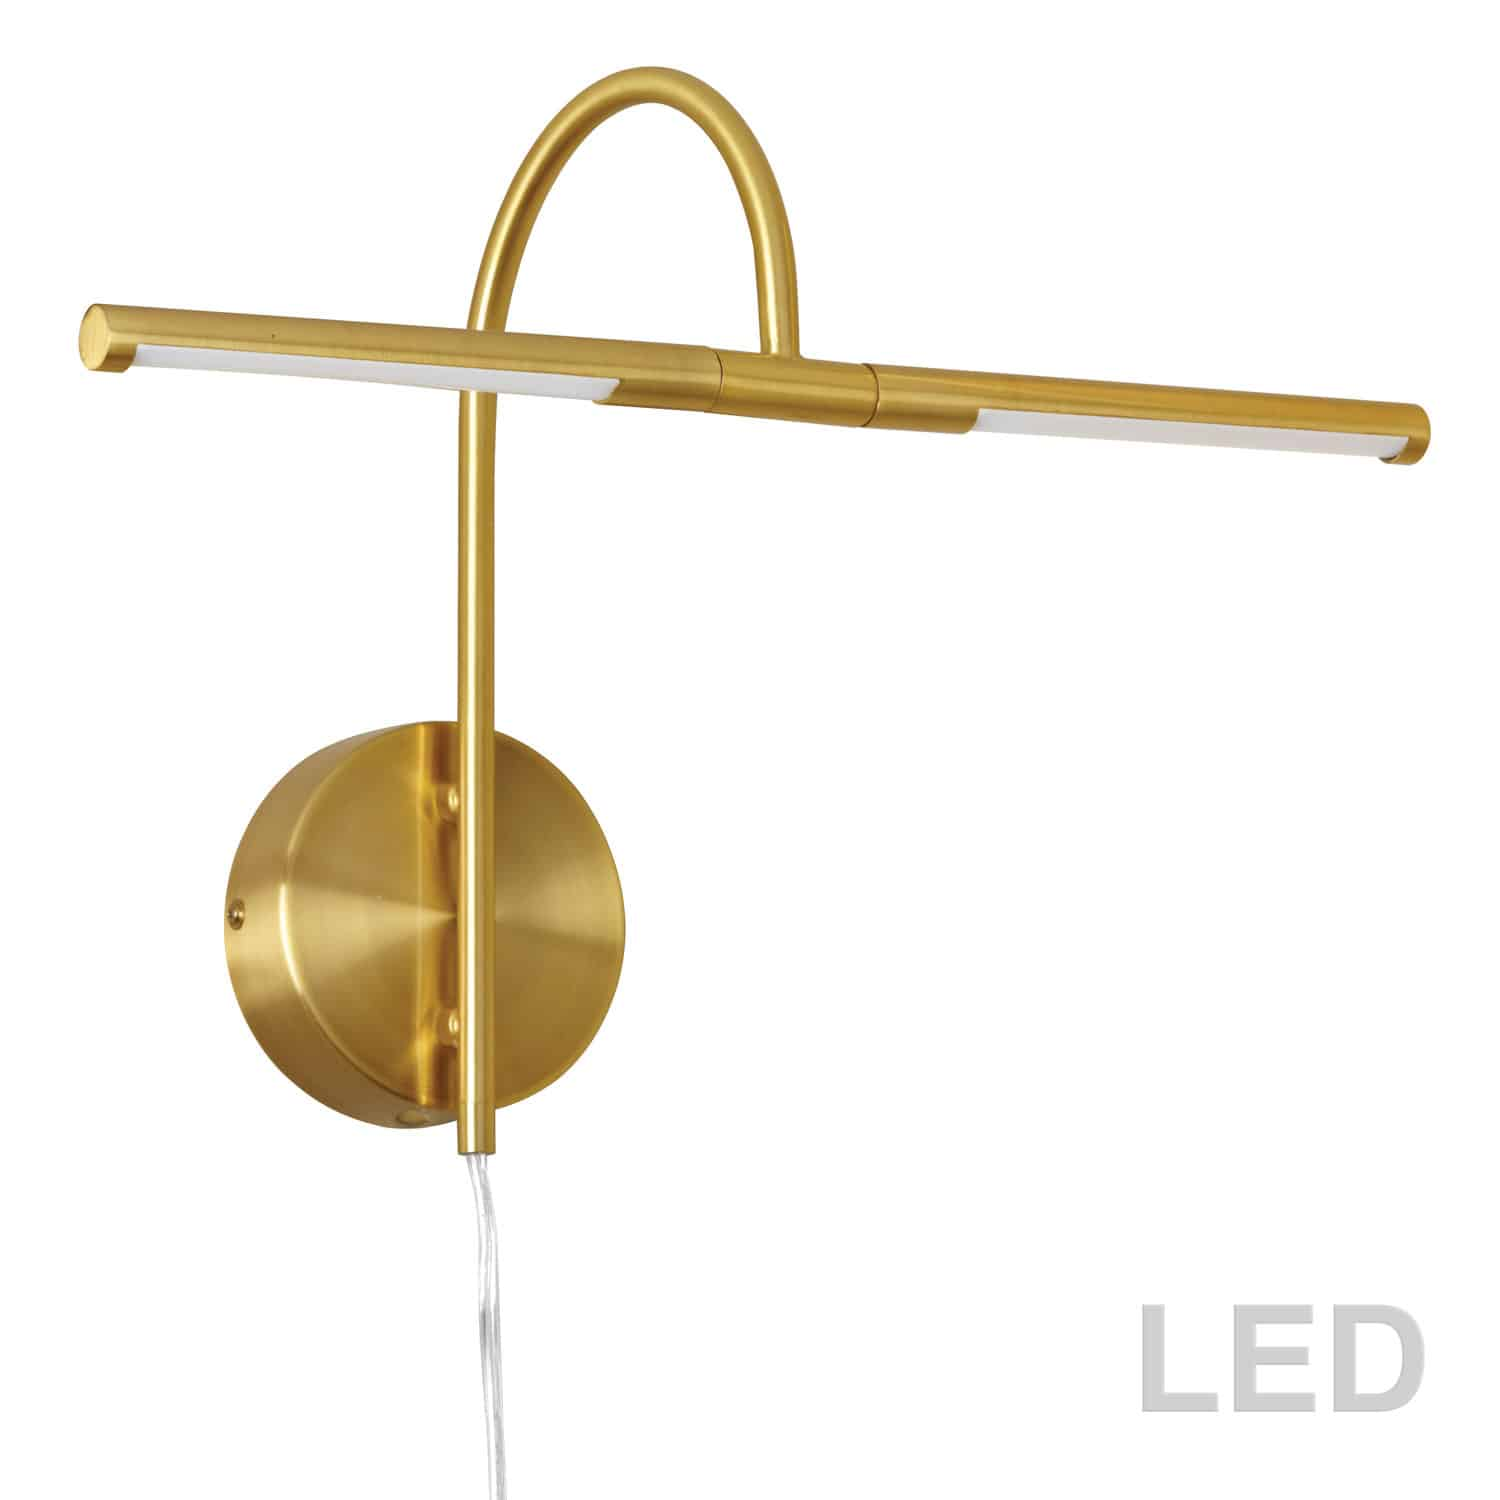 6W LED Picture Light Aged Brass Finish